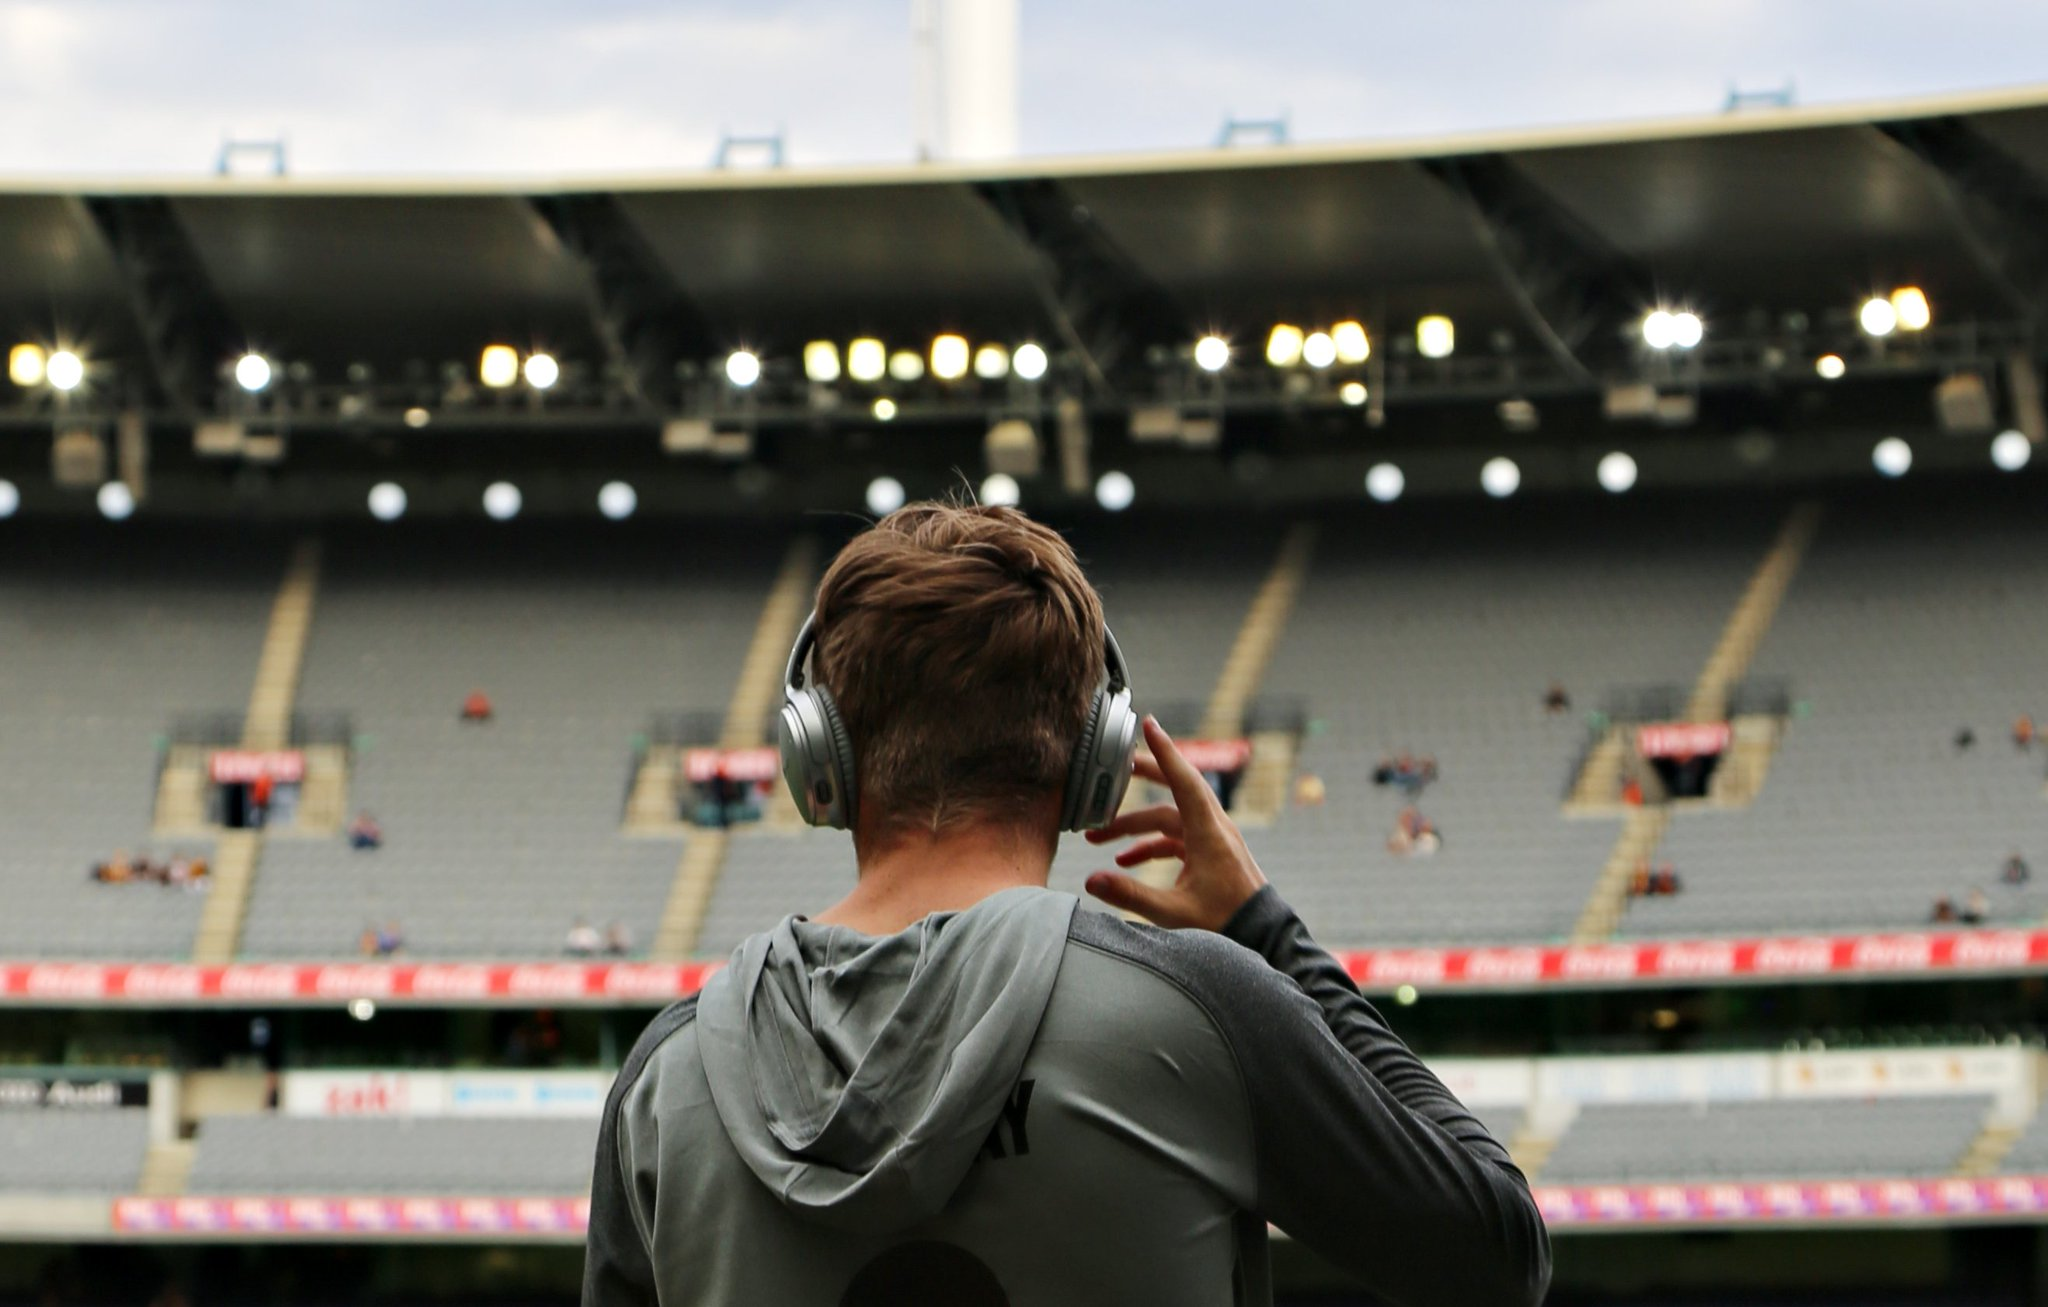 World class sounds meets first class Collingwood athlete tonight. Where!? The @Bose_Australia store at Emporium Melb. Come for a meet + greet from 6-7pm. #FOREVER https://t.co/DFCnQKToig